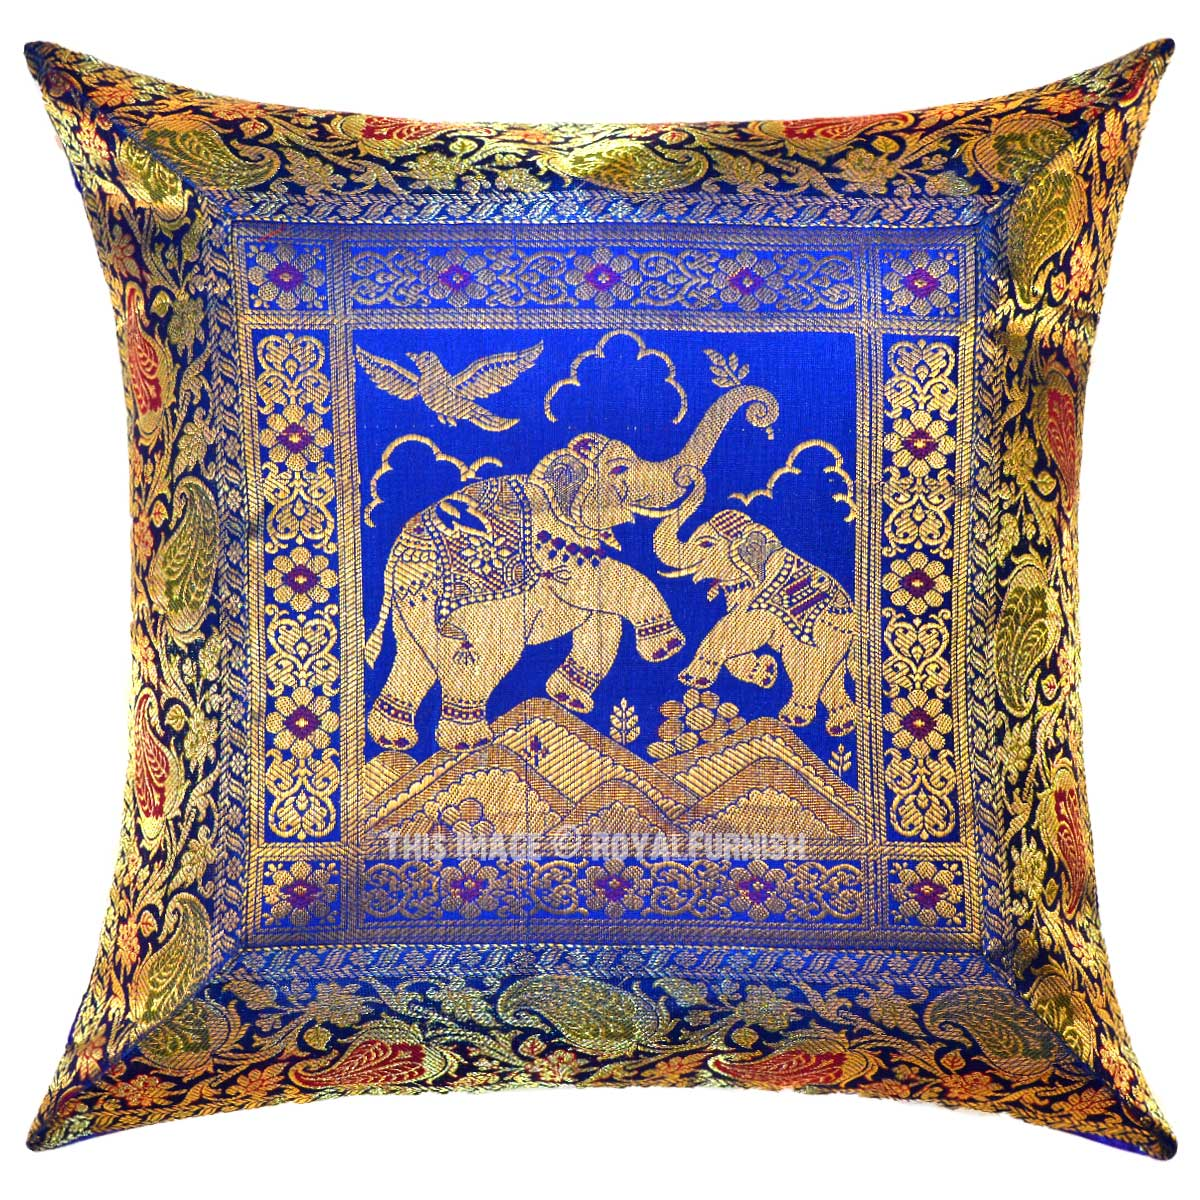 Blue Multi Royal Elephant Featuring Unique Silk Brocade Throw Pillow Cover 16X16 Inch ...